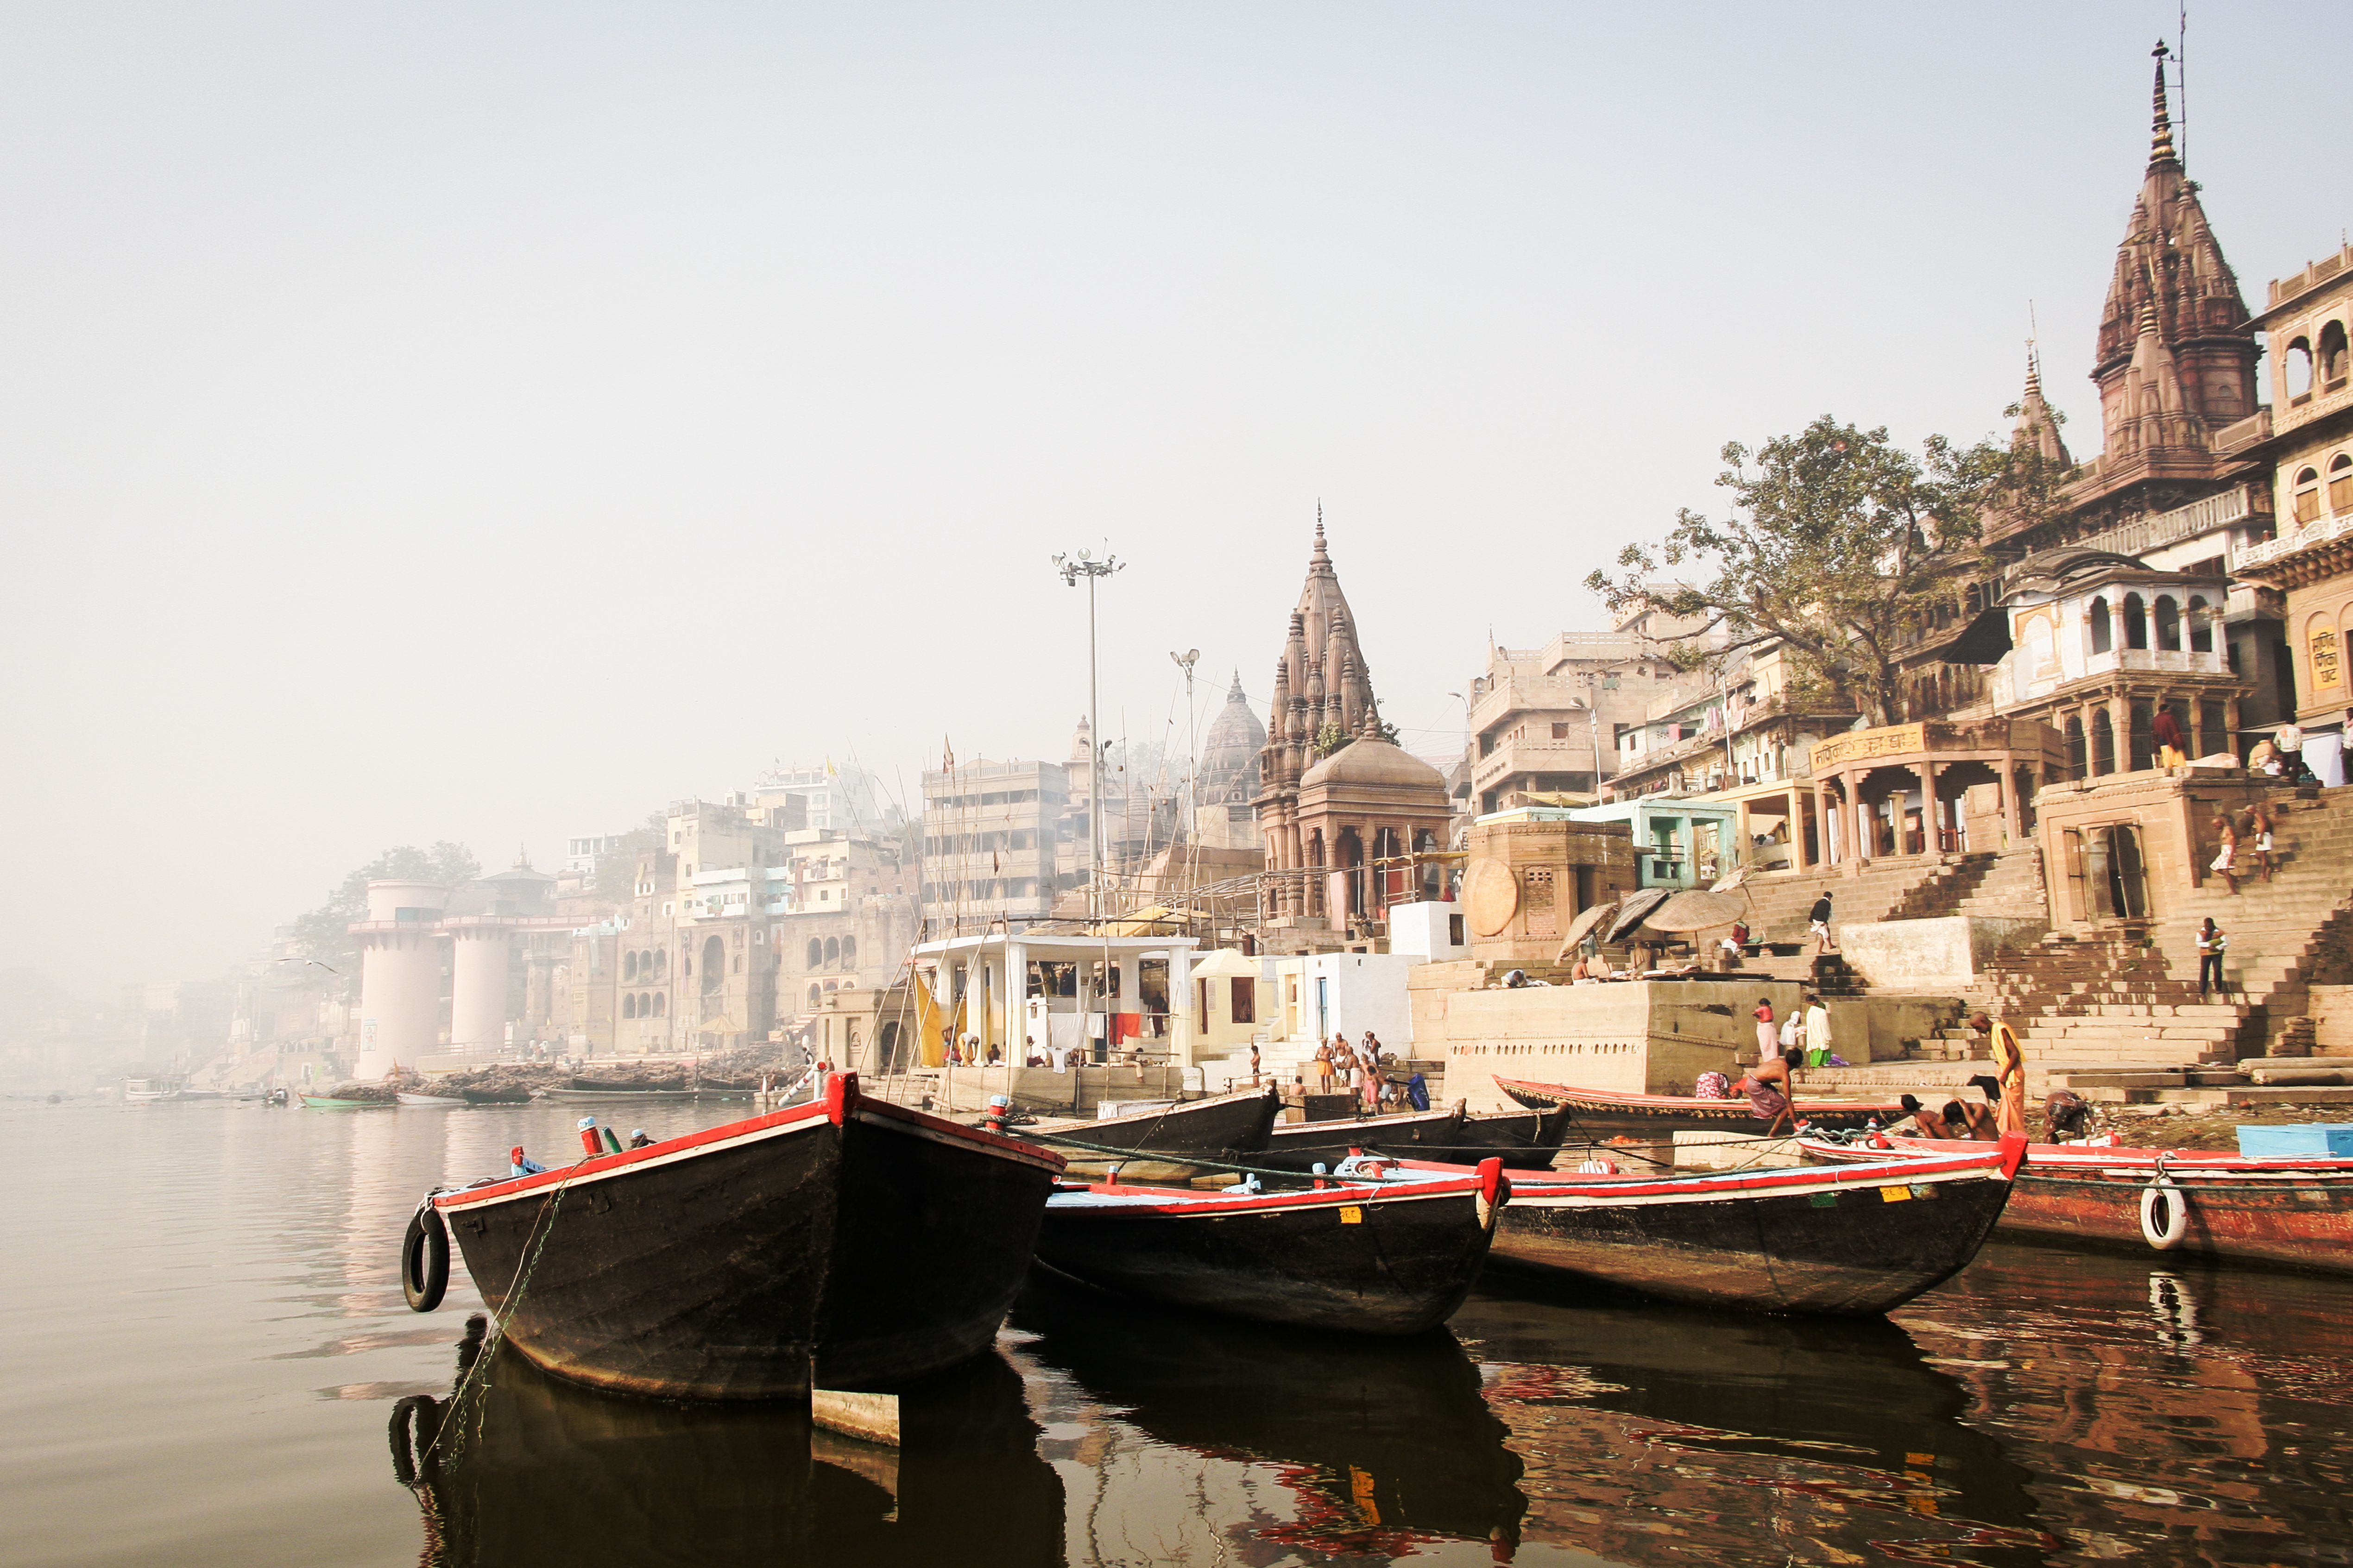 Pleasure boats and ancient Hindu temples on River Ganges